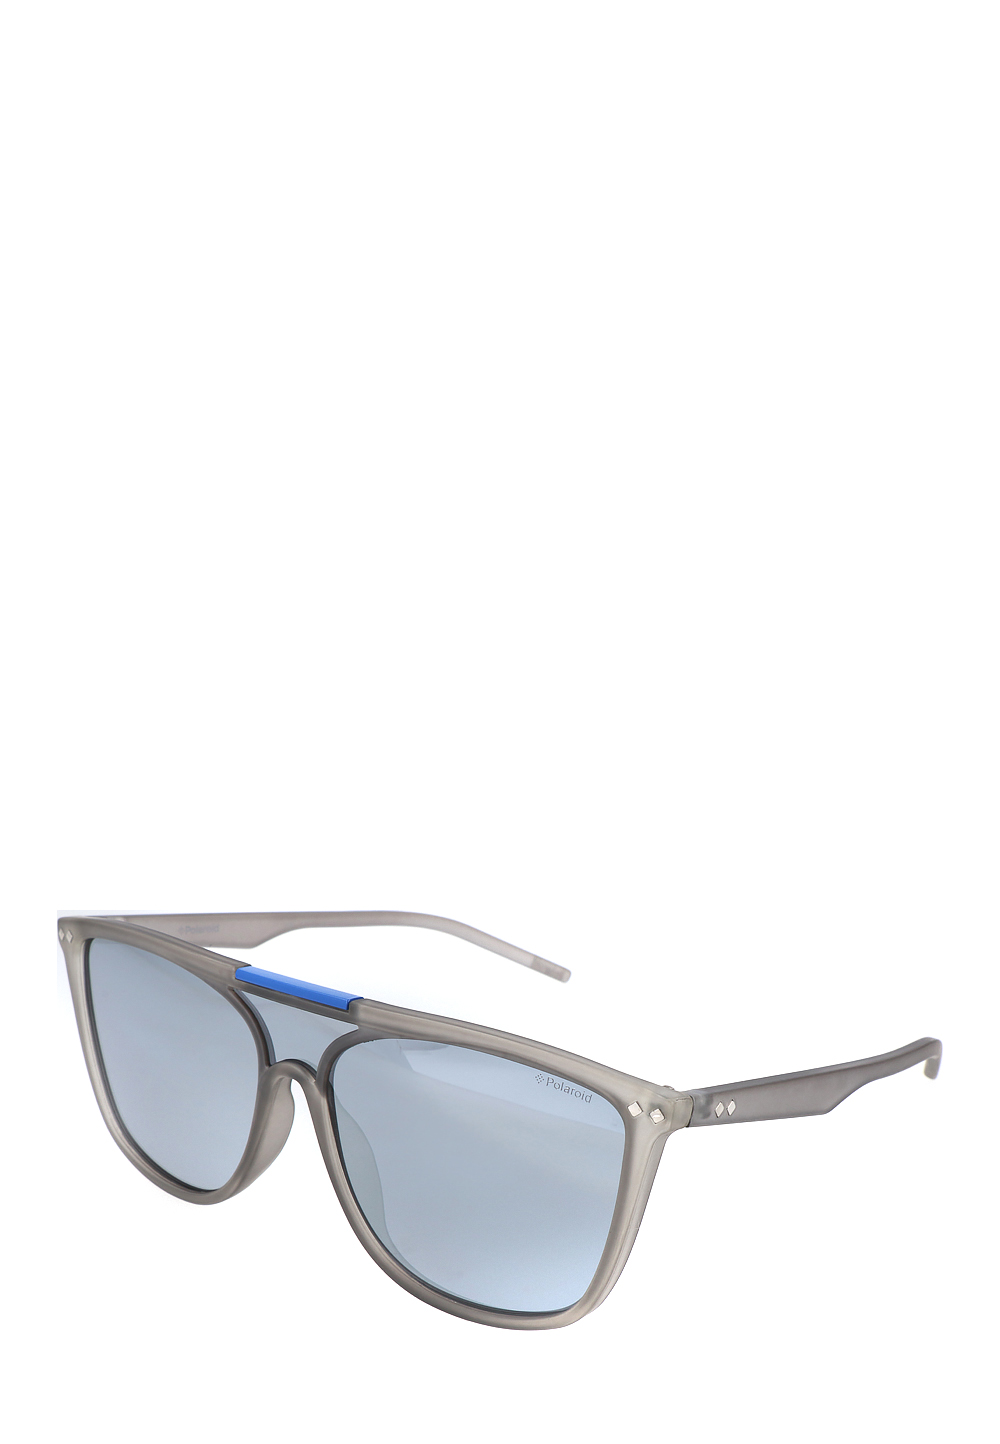 Sonnenbrille Pld6024/S, polarized, Uv400, grey grau